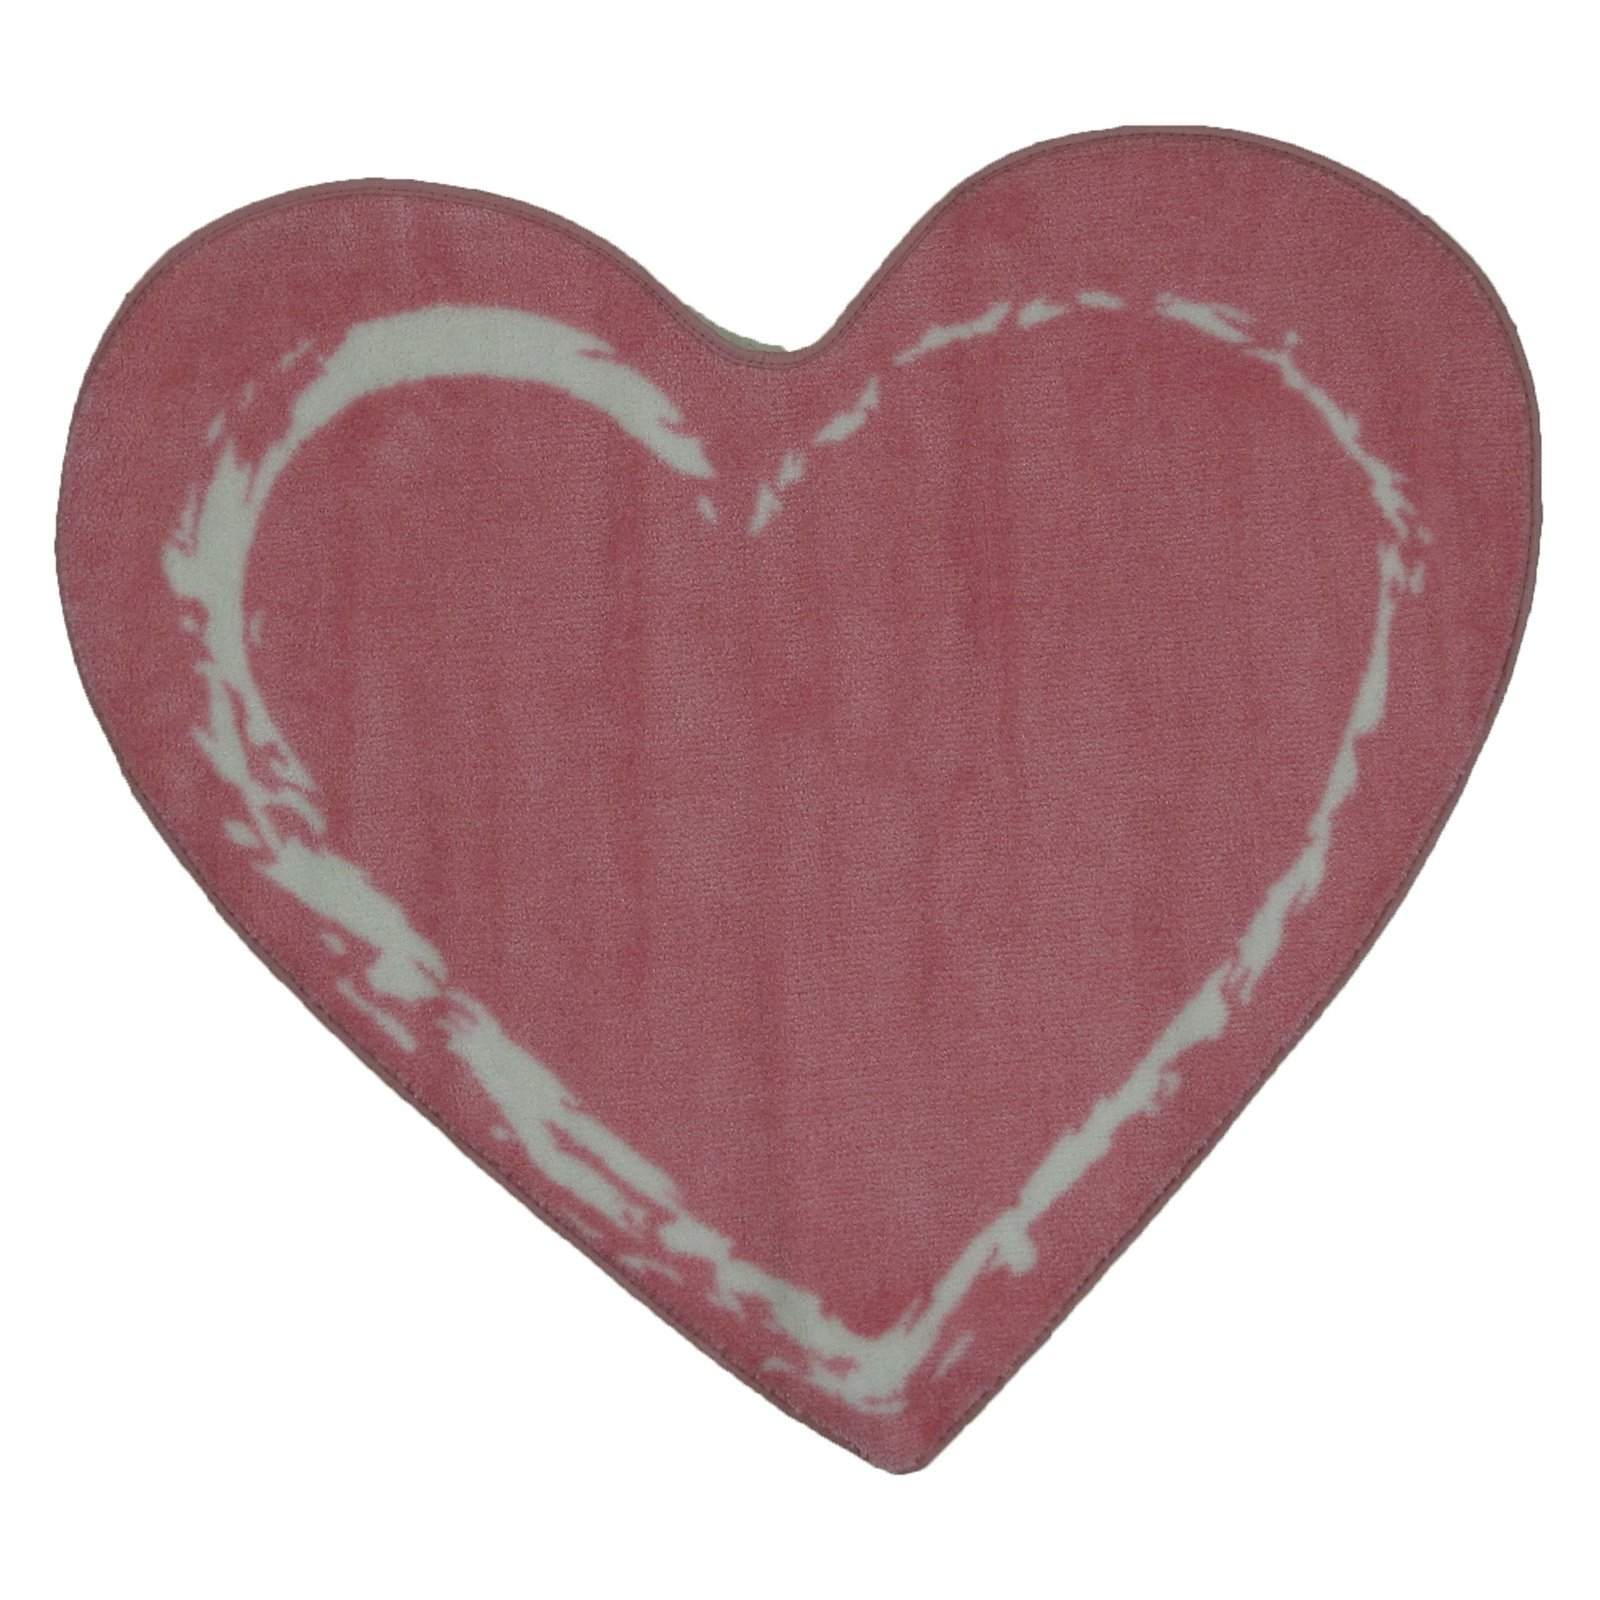 "Fun Rugs Pink Heart 35"" x 39"" Rug"